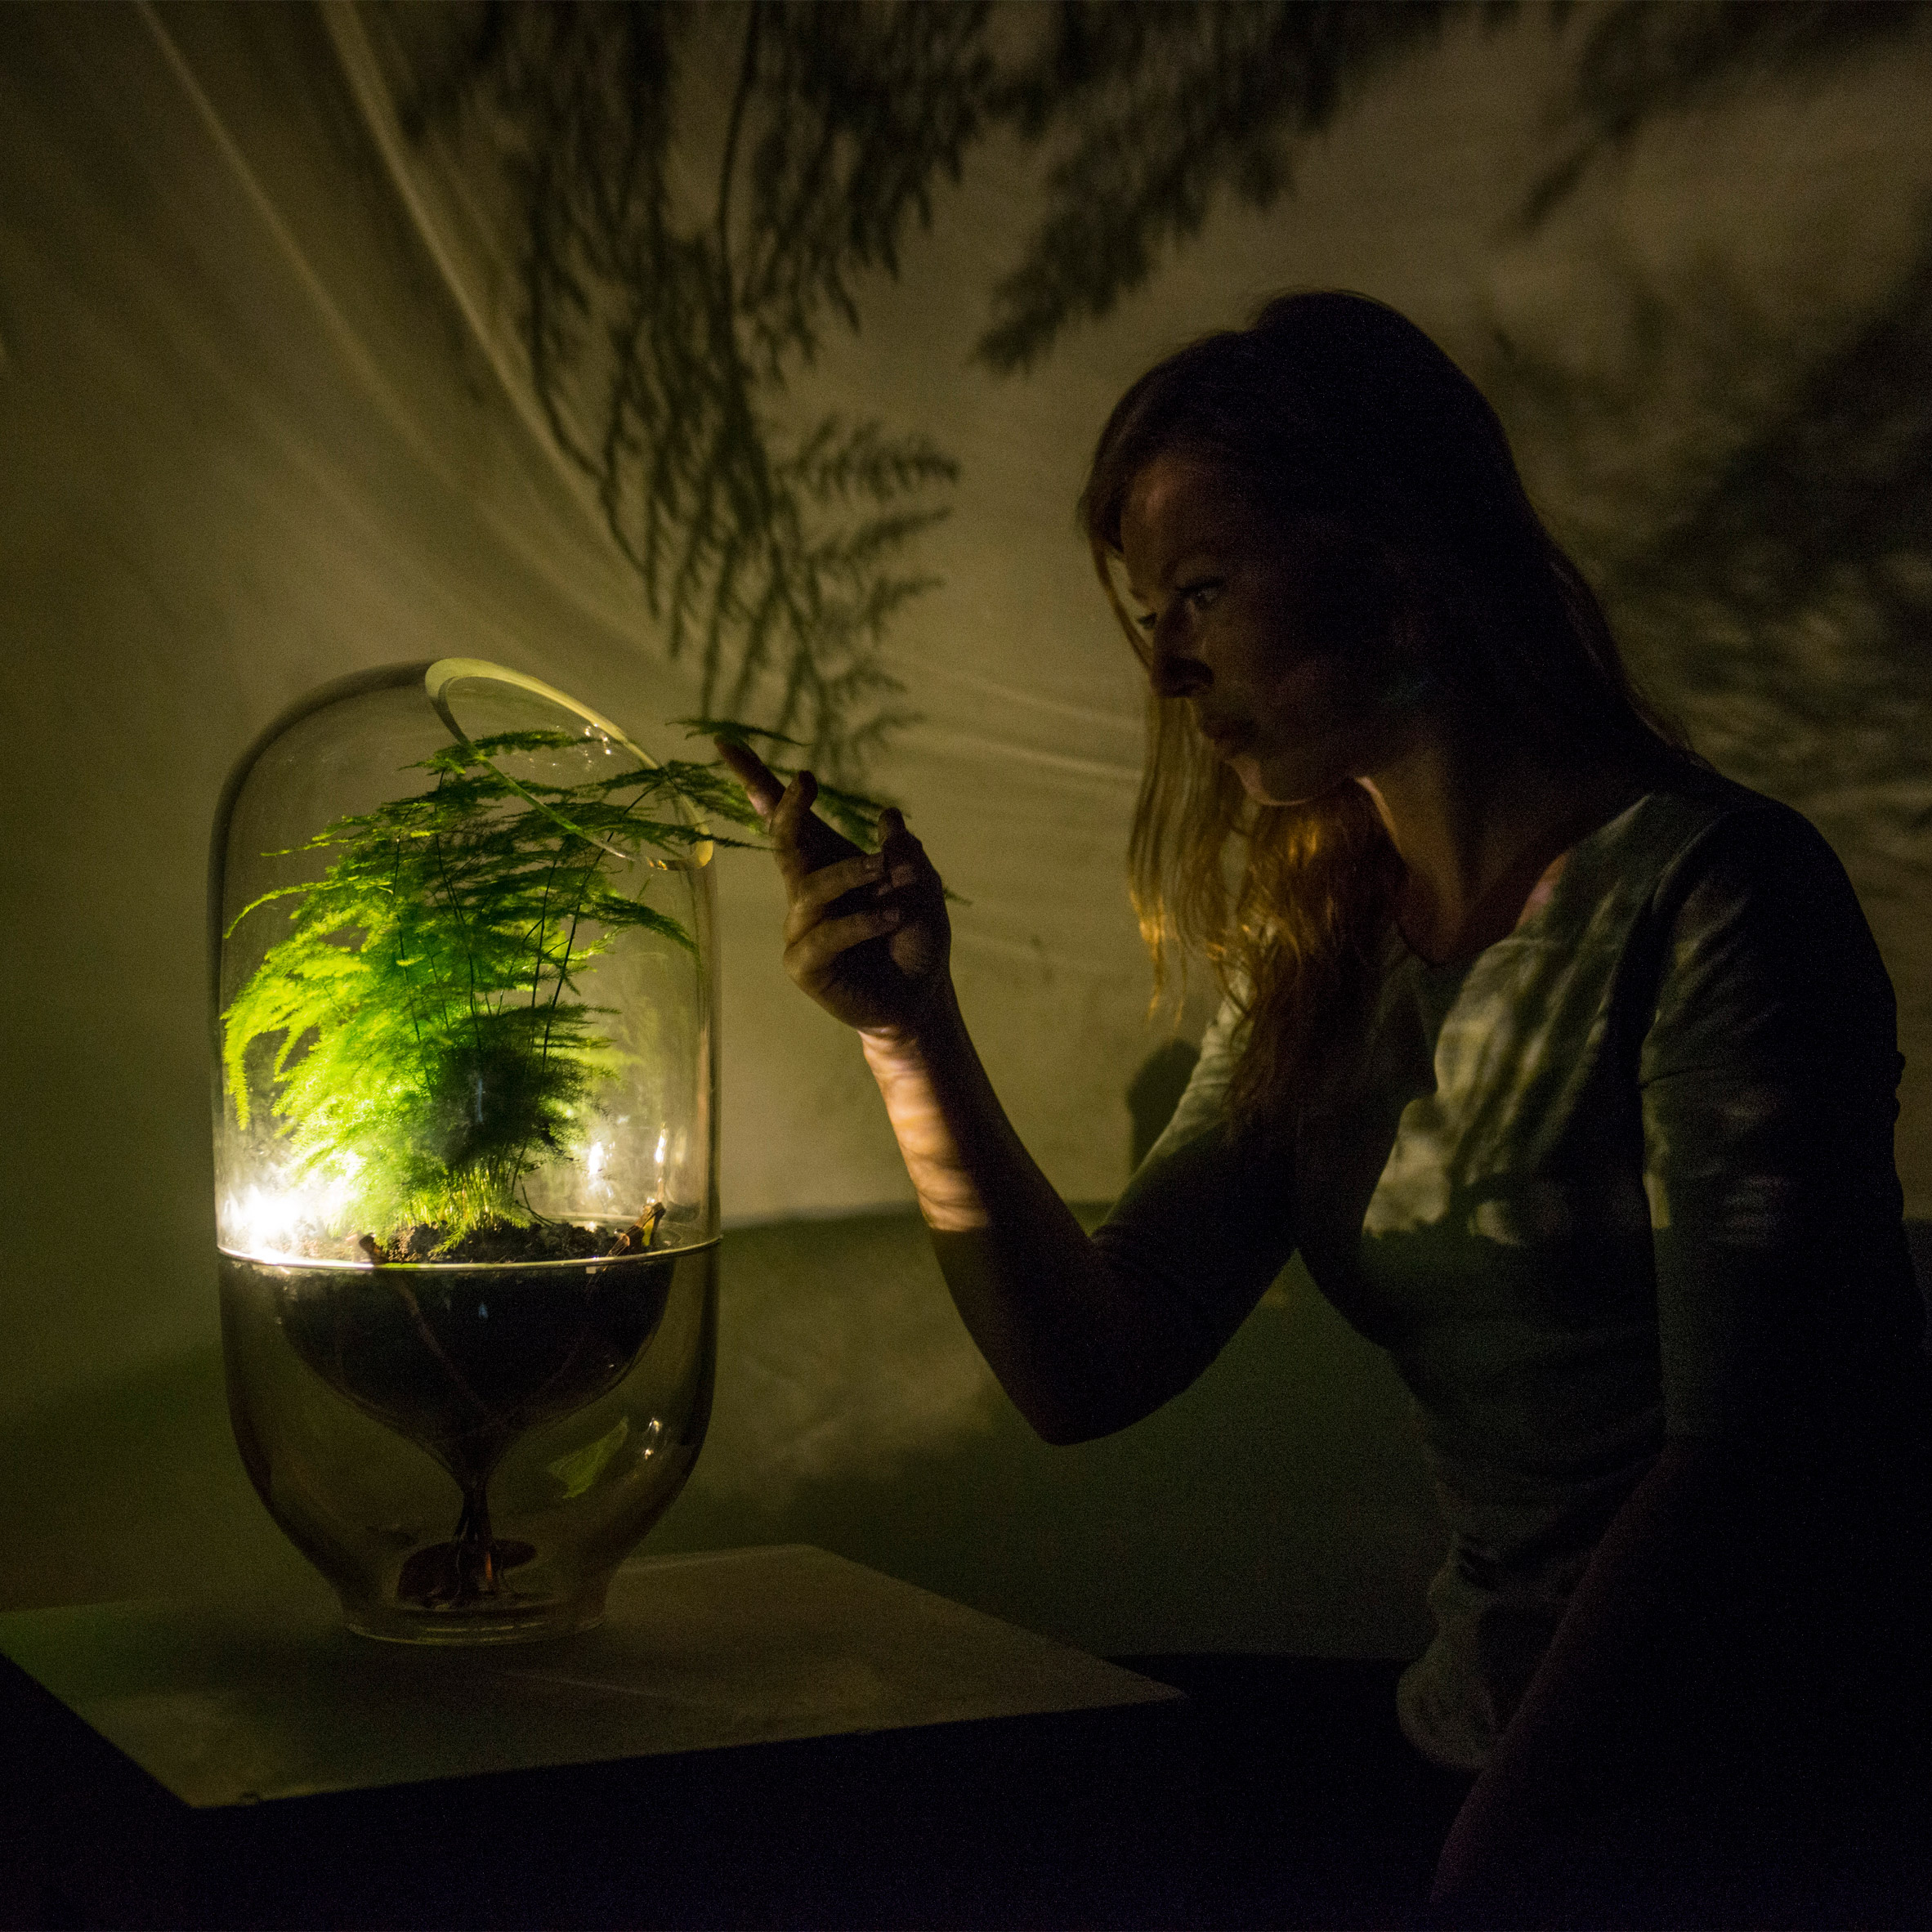 Living Light is an off-grid lamp powered by photosynthesis